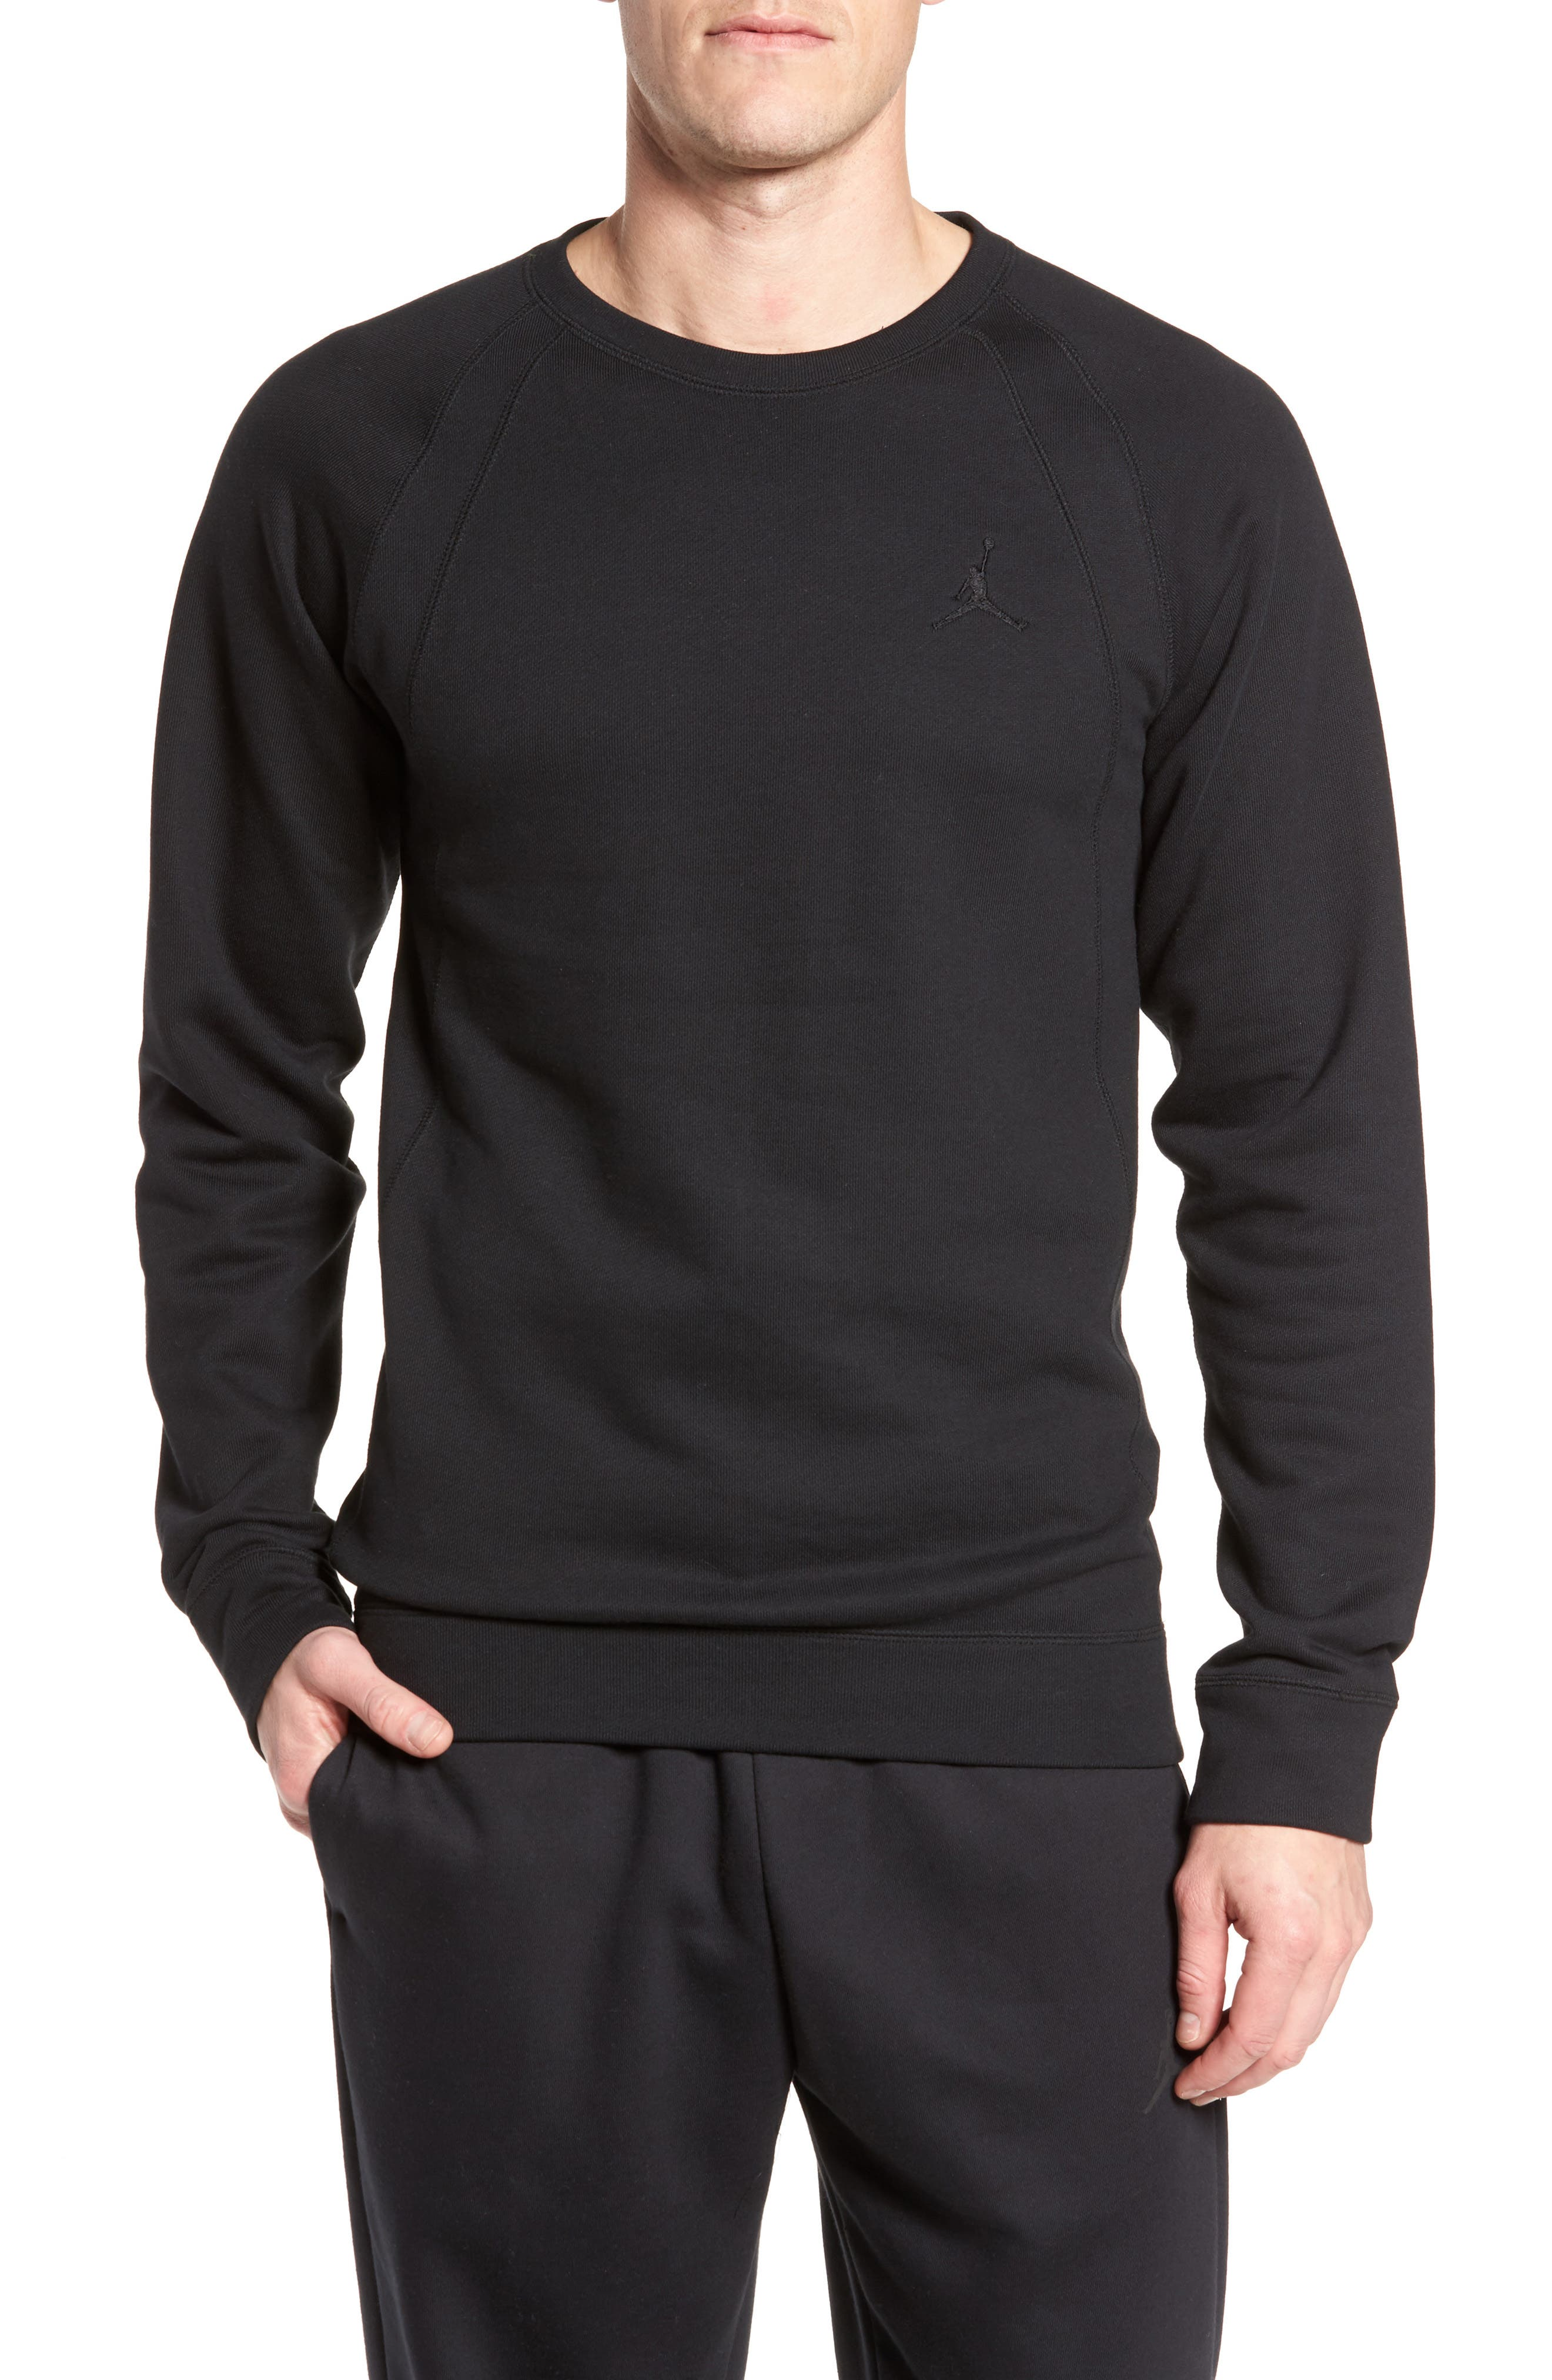 Jordan Sportswear Wings Pullover,                         Main,                         color, Black/ Black